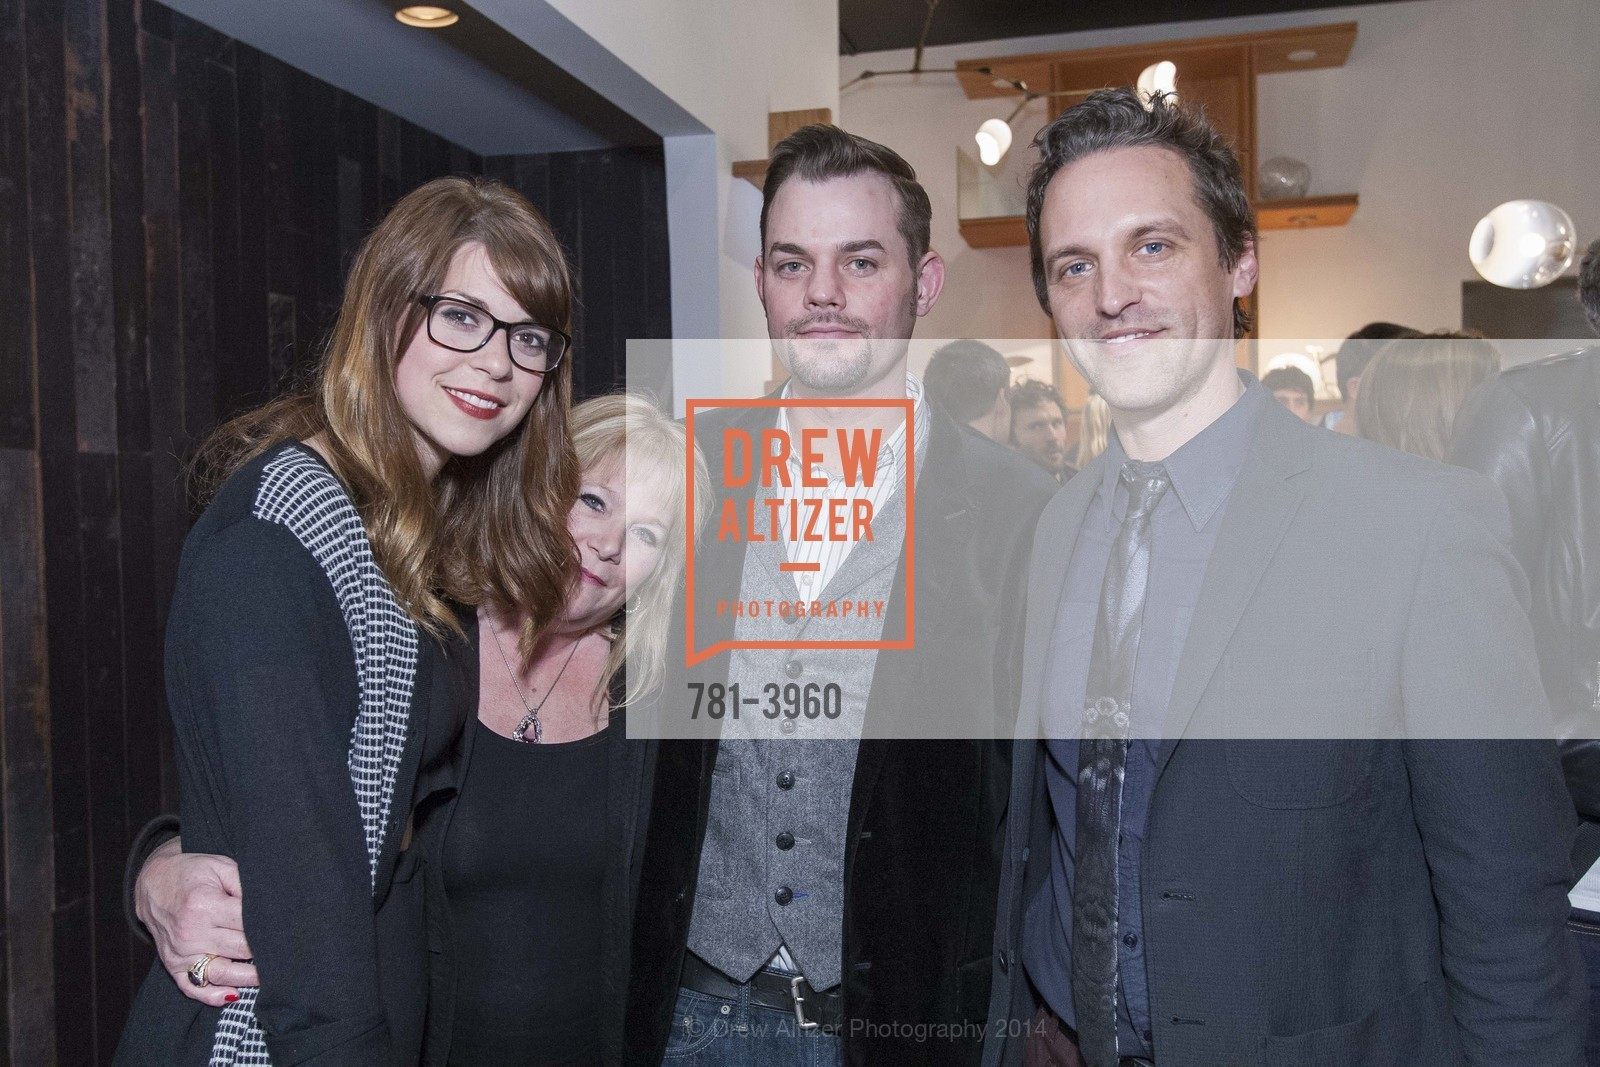 Annie Maas, Lynn Maas, Joe Fosso, Jared Rue, Photo #781-3960